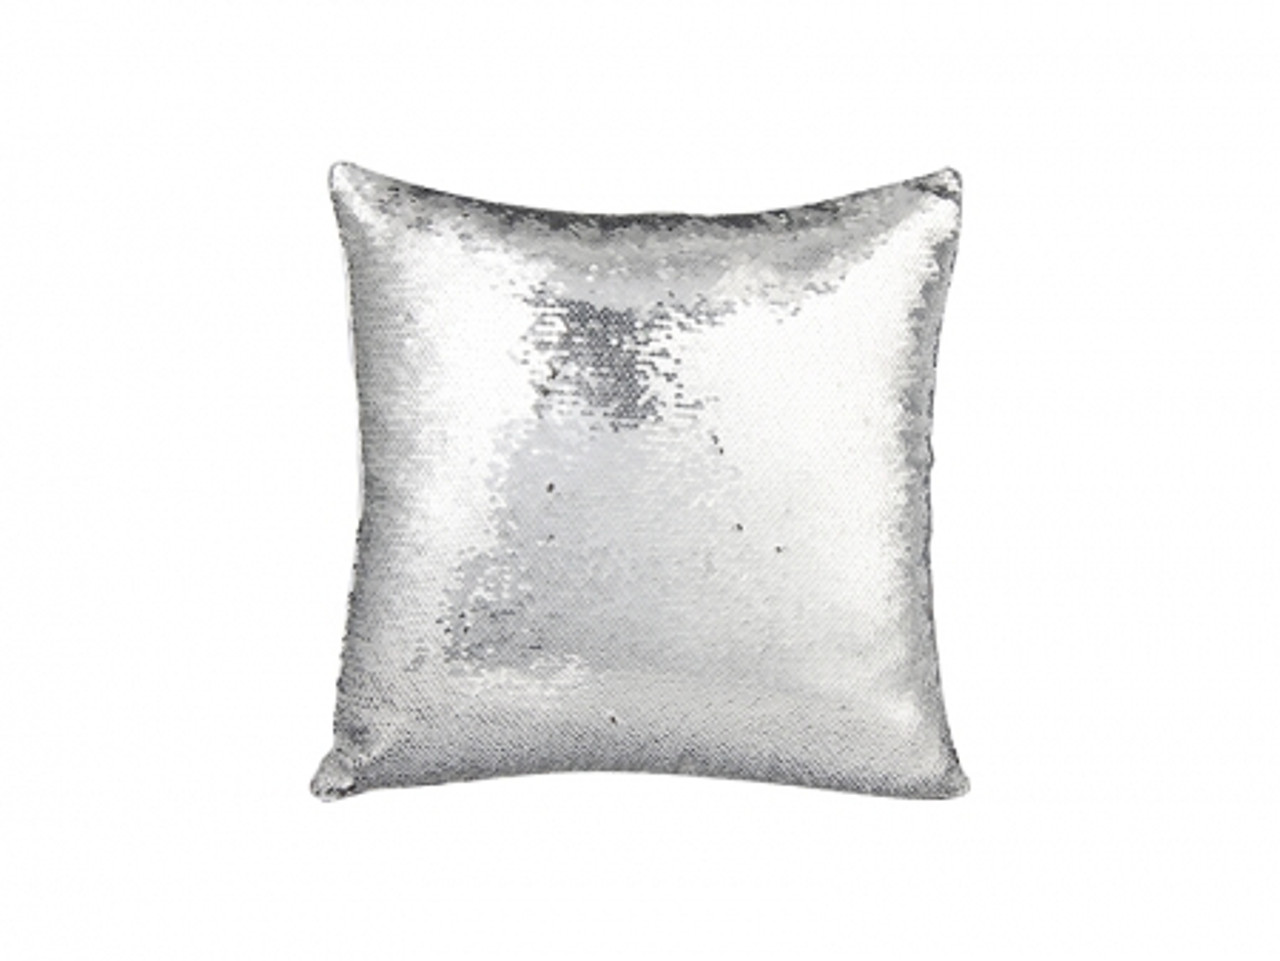 Flip Sequin Pillow Cover Silver With Black (White Back)- PACK OF 10 -  SEQUINS DO NOT SUBLIMATE WELL